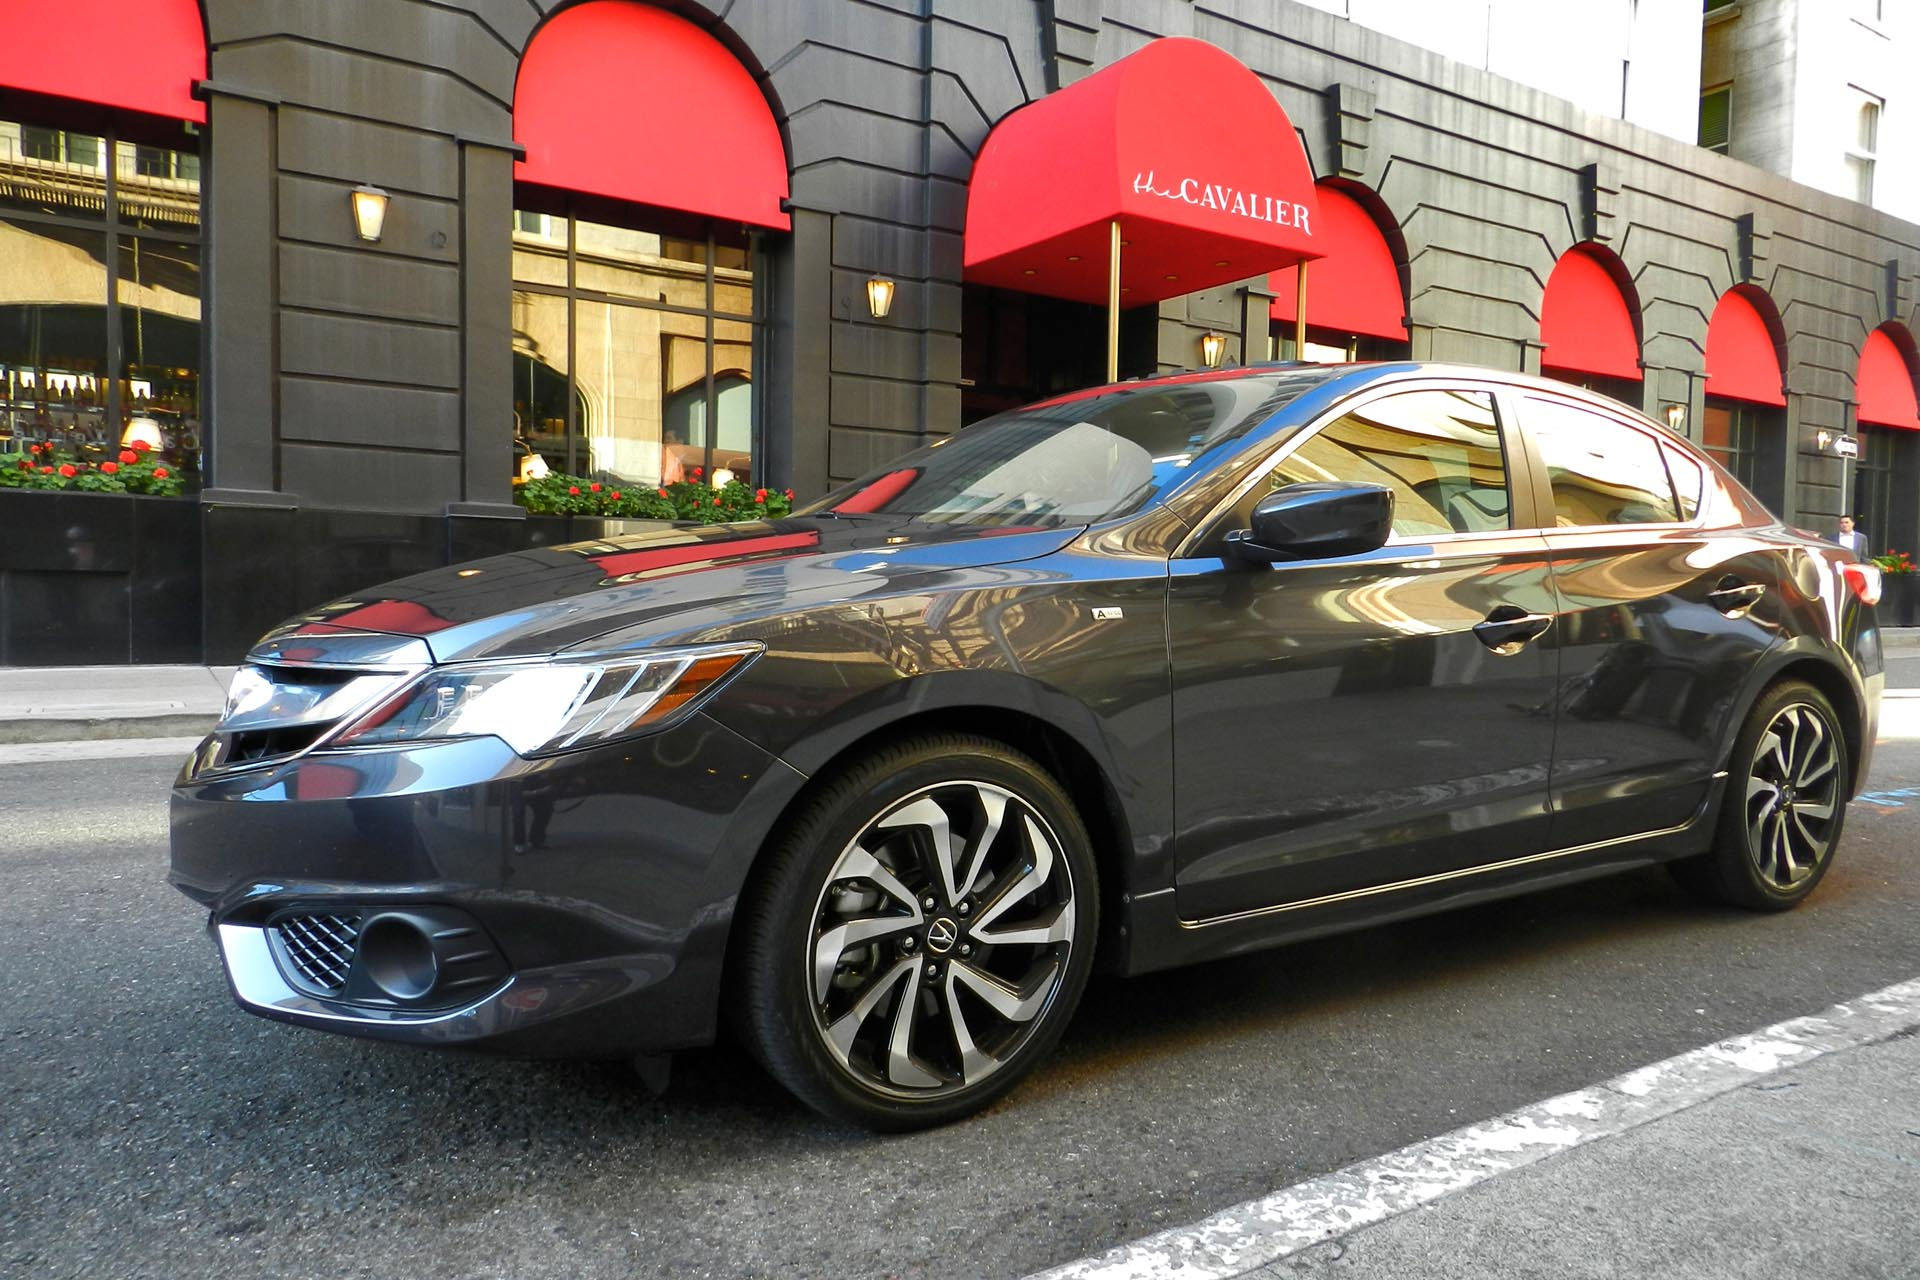 ilx big changes make leader the review spec not competitive acura a rear segment